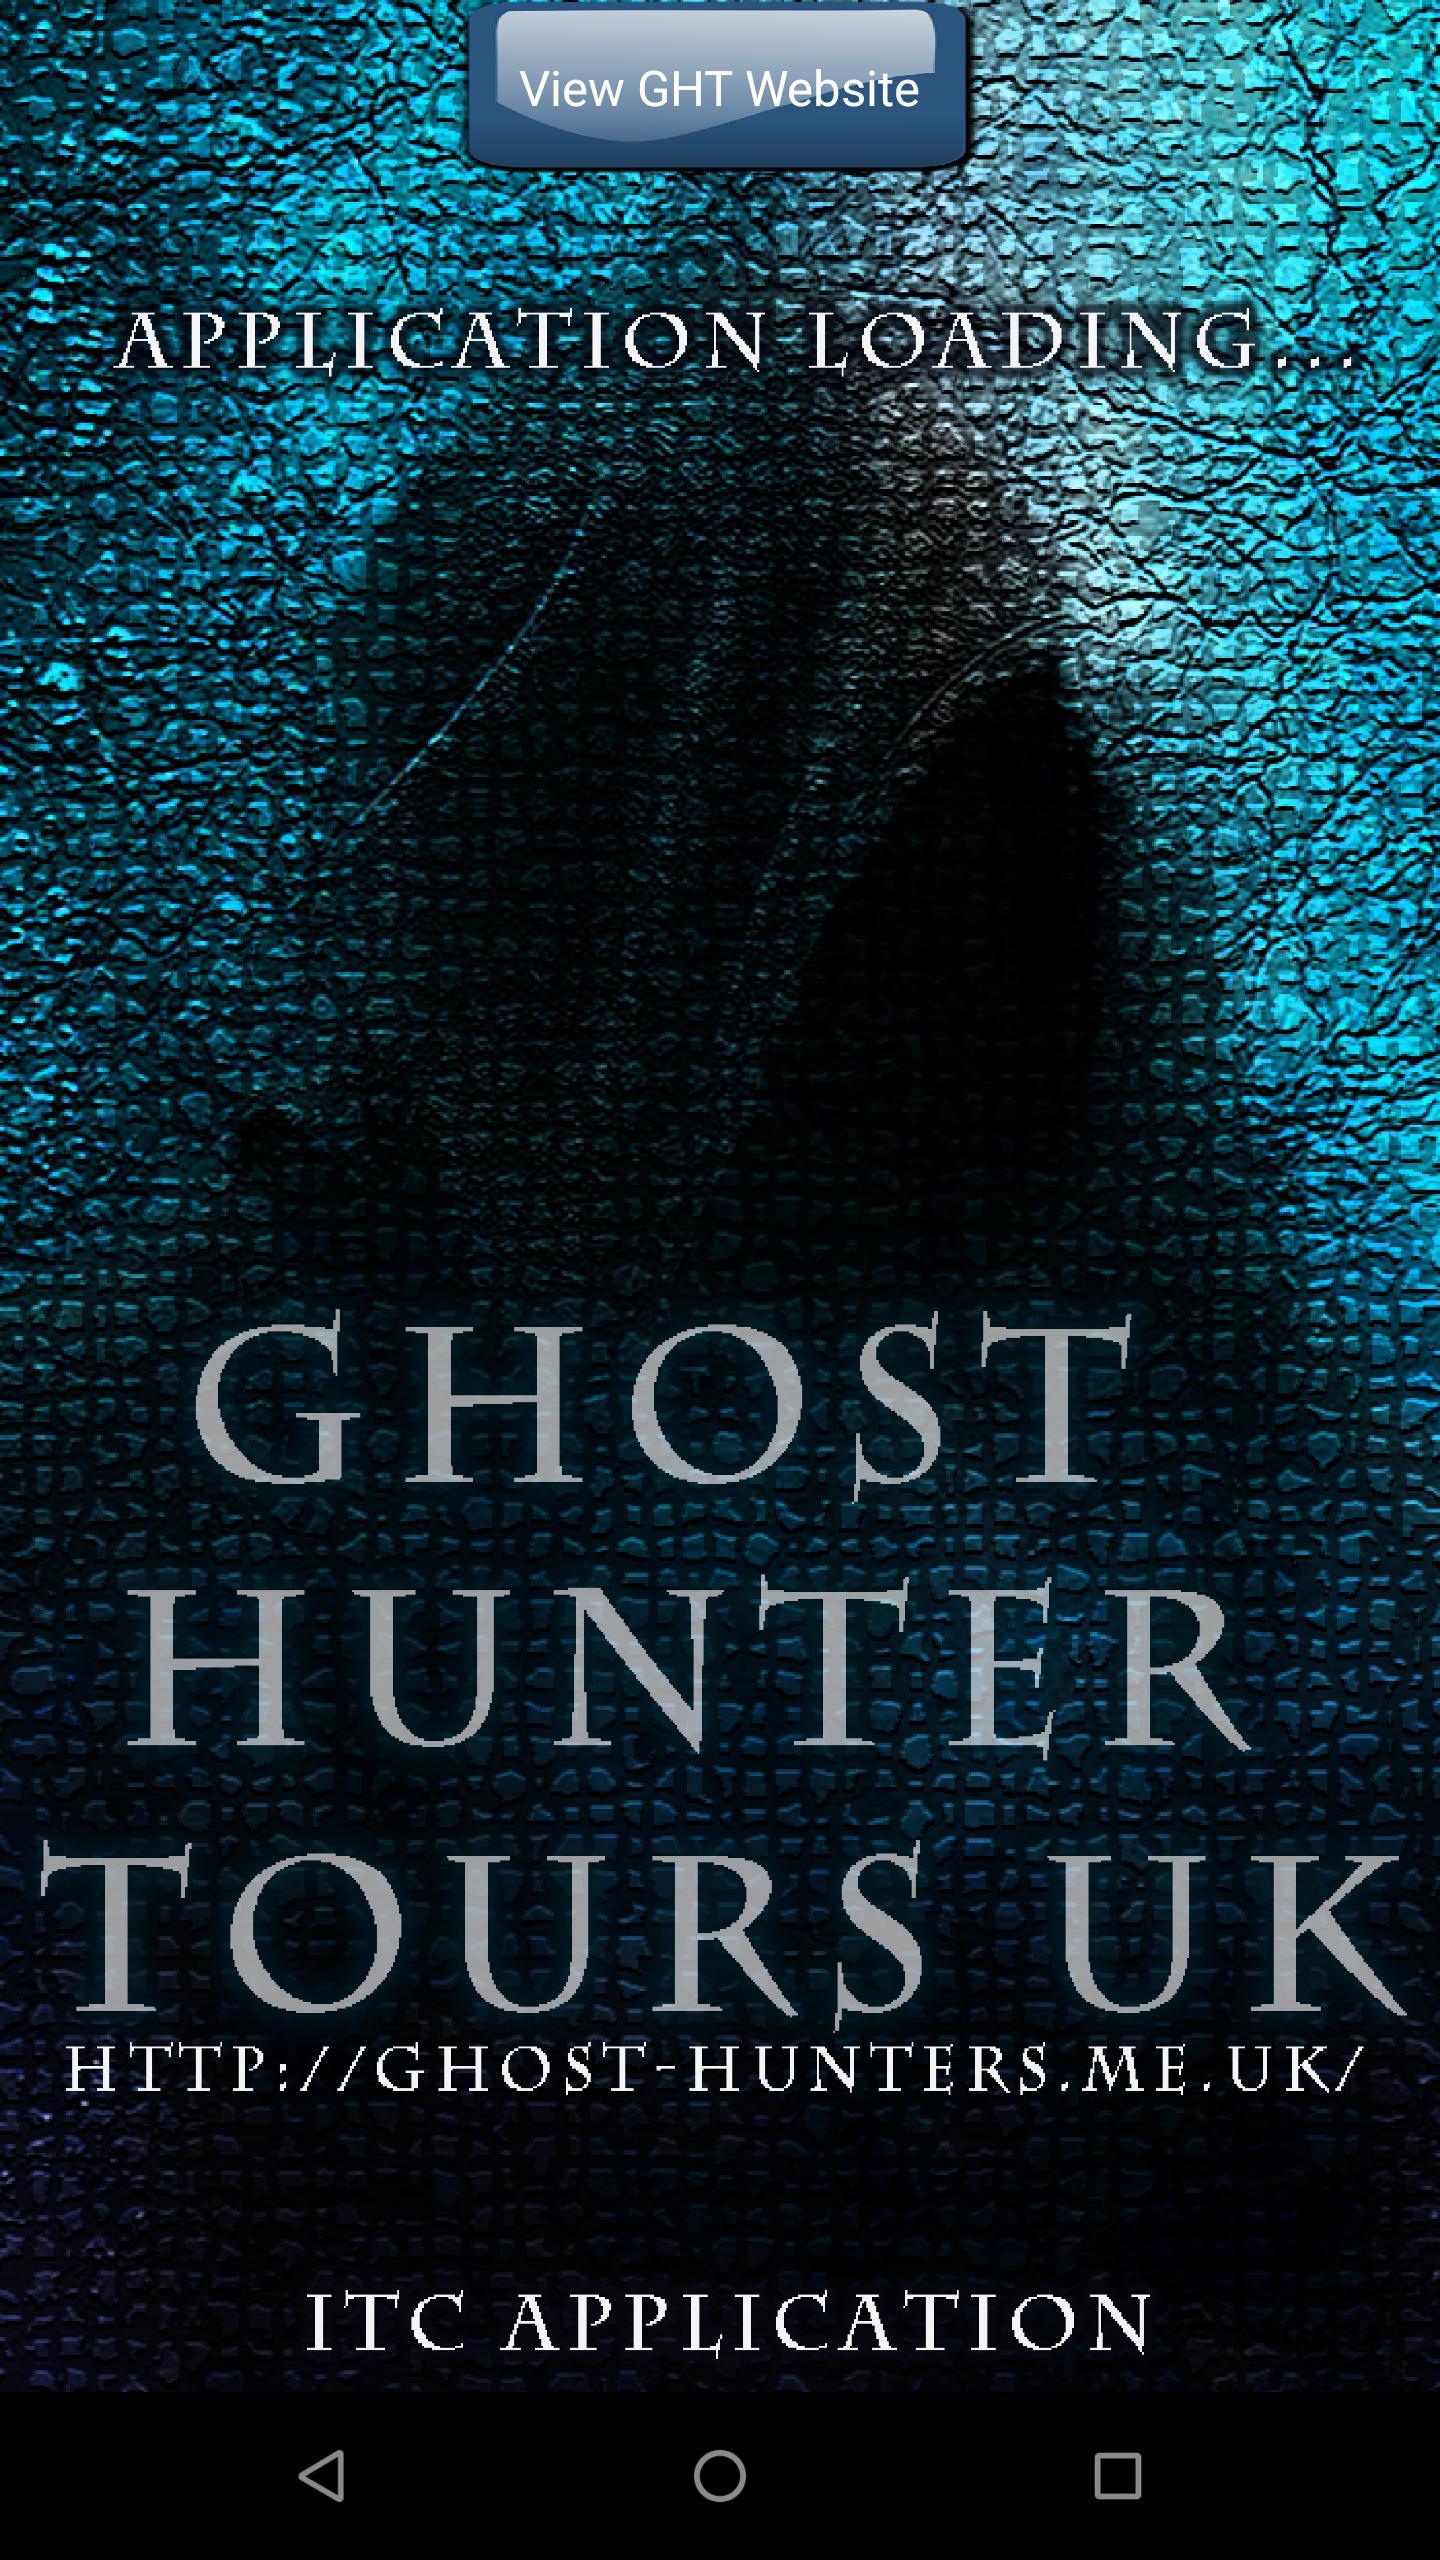 Ghost Hunter Tours ITC for Android - APK Download